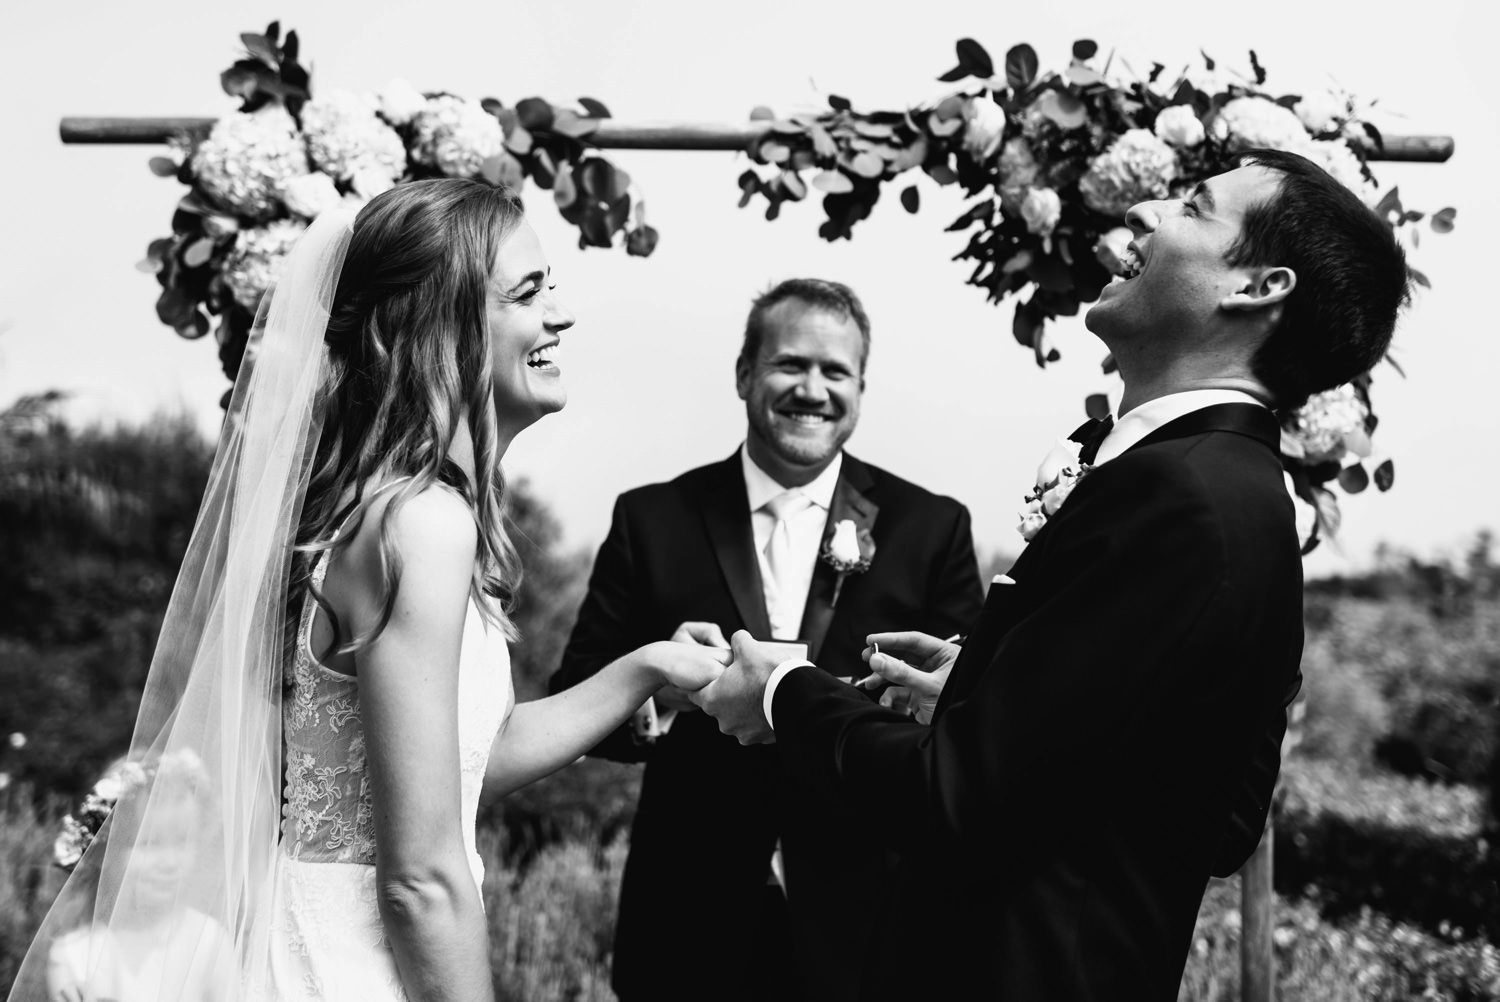 hysterical laughing as couple place rings on fingers - montecito wedding photography